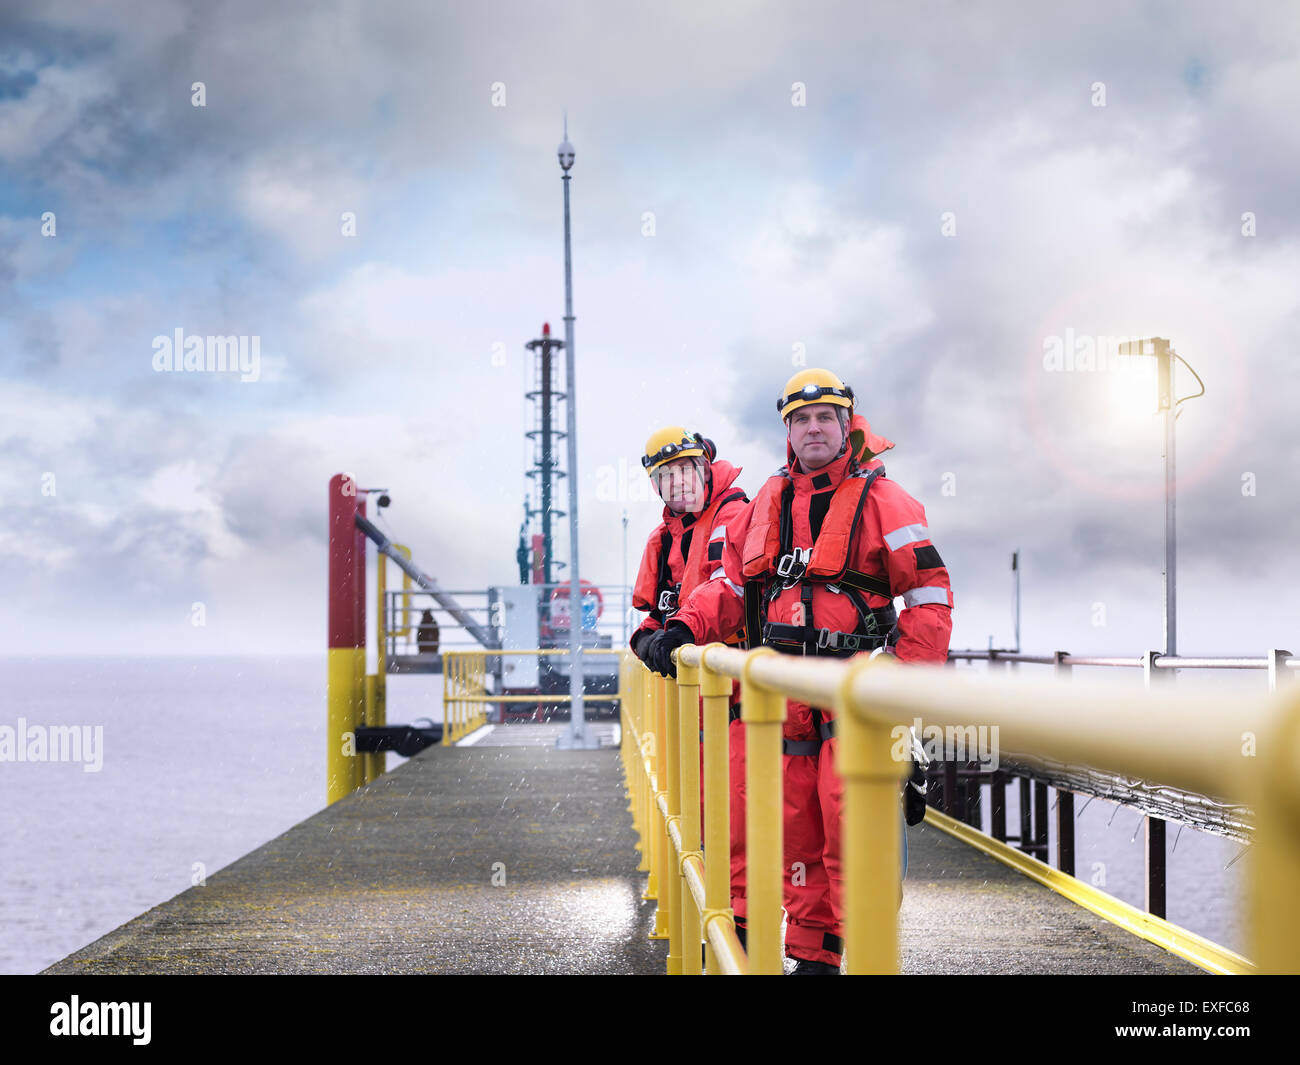 Offshore windfarm workers on jetty at sea, portrait - Stock Image